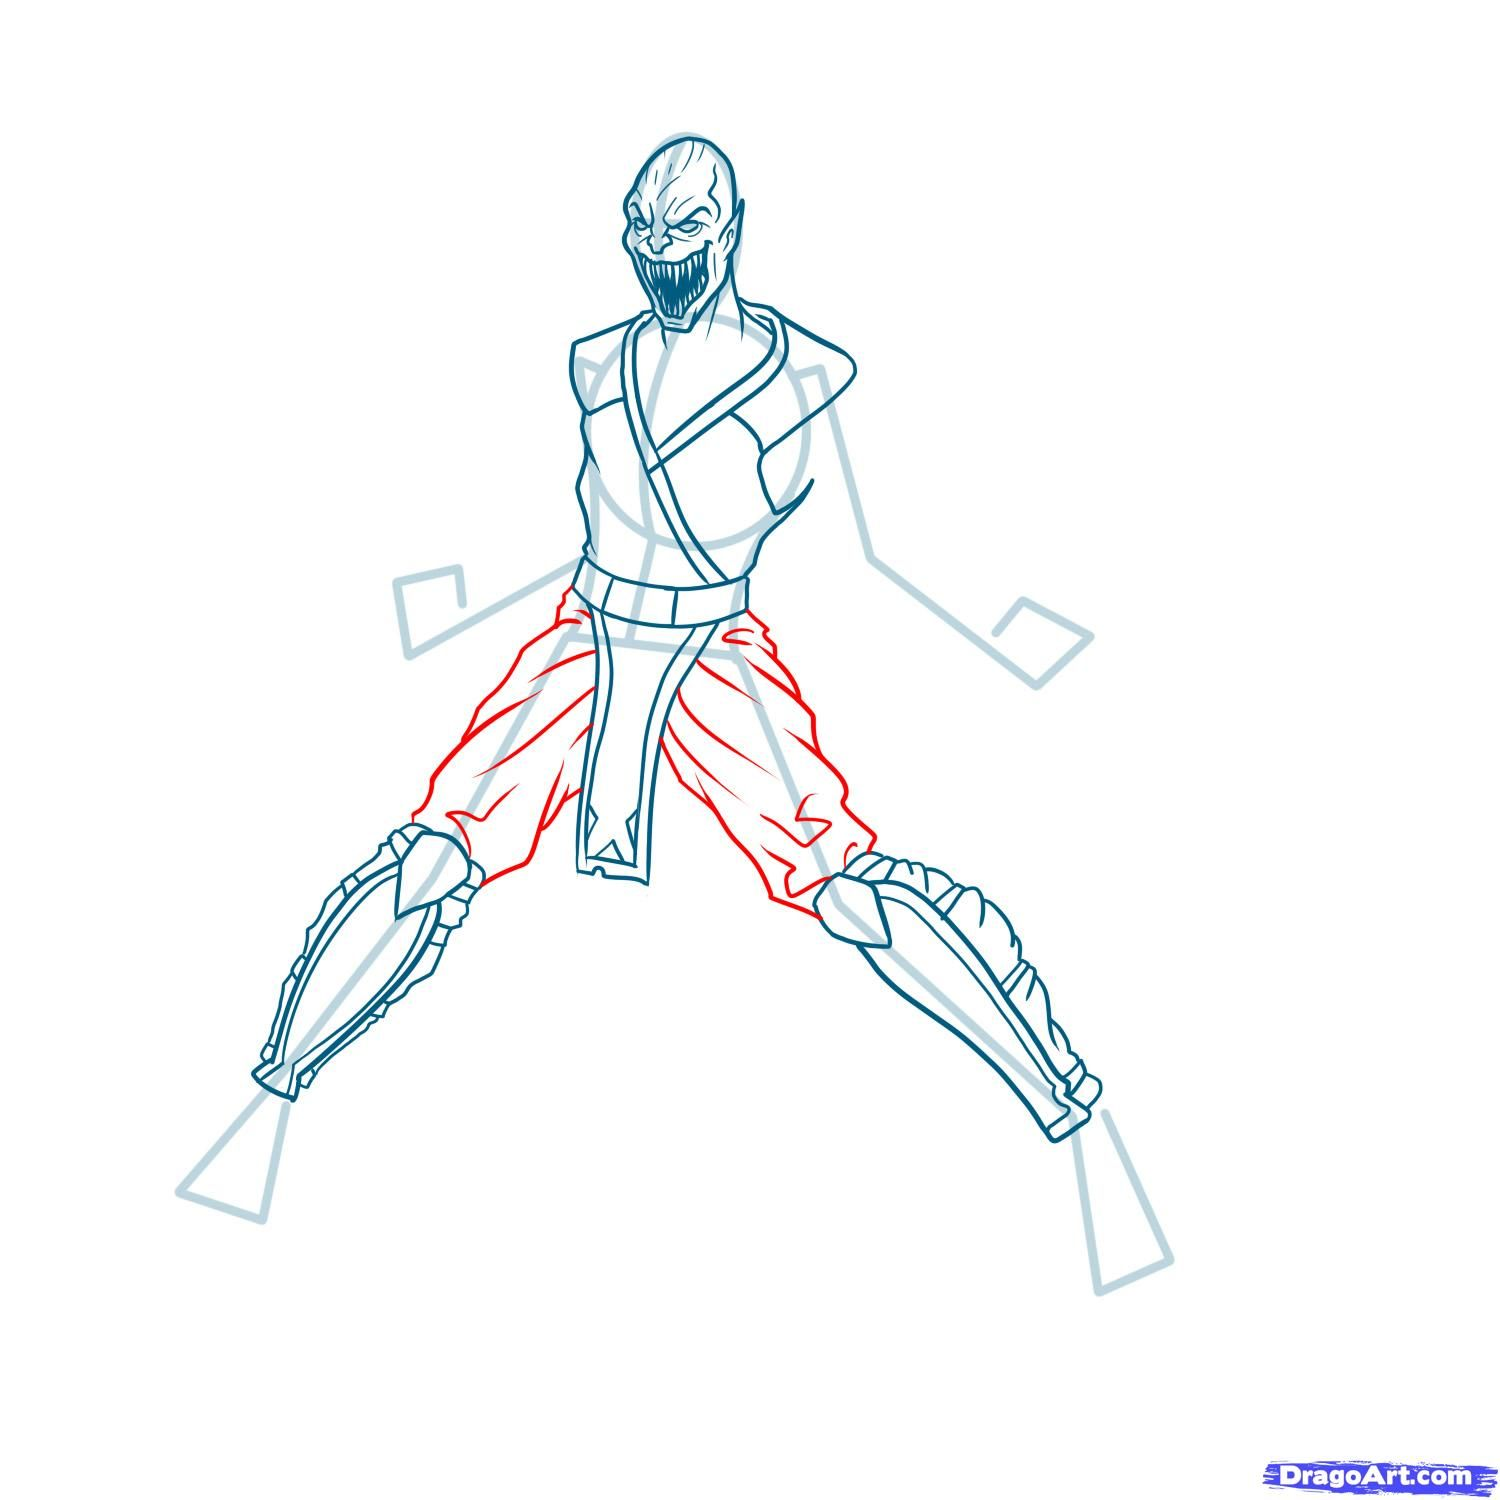 How to draw the Scorpion to the utmost from Mortal Kombat with a pencil step by step 11